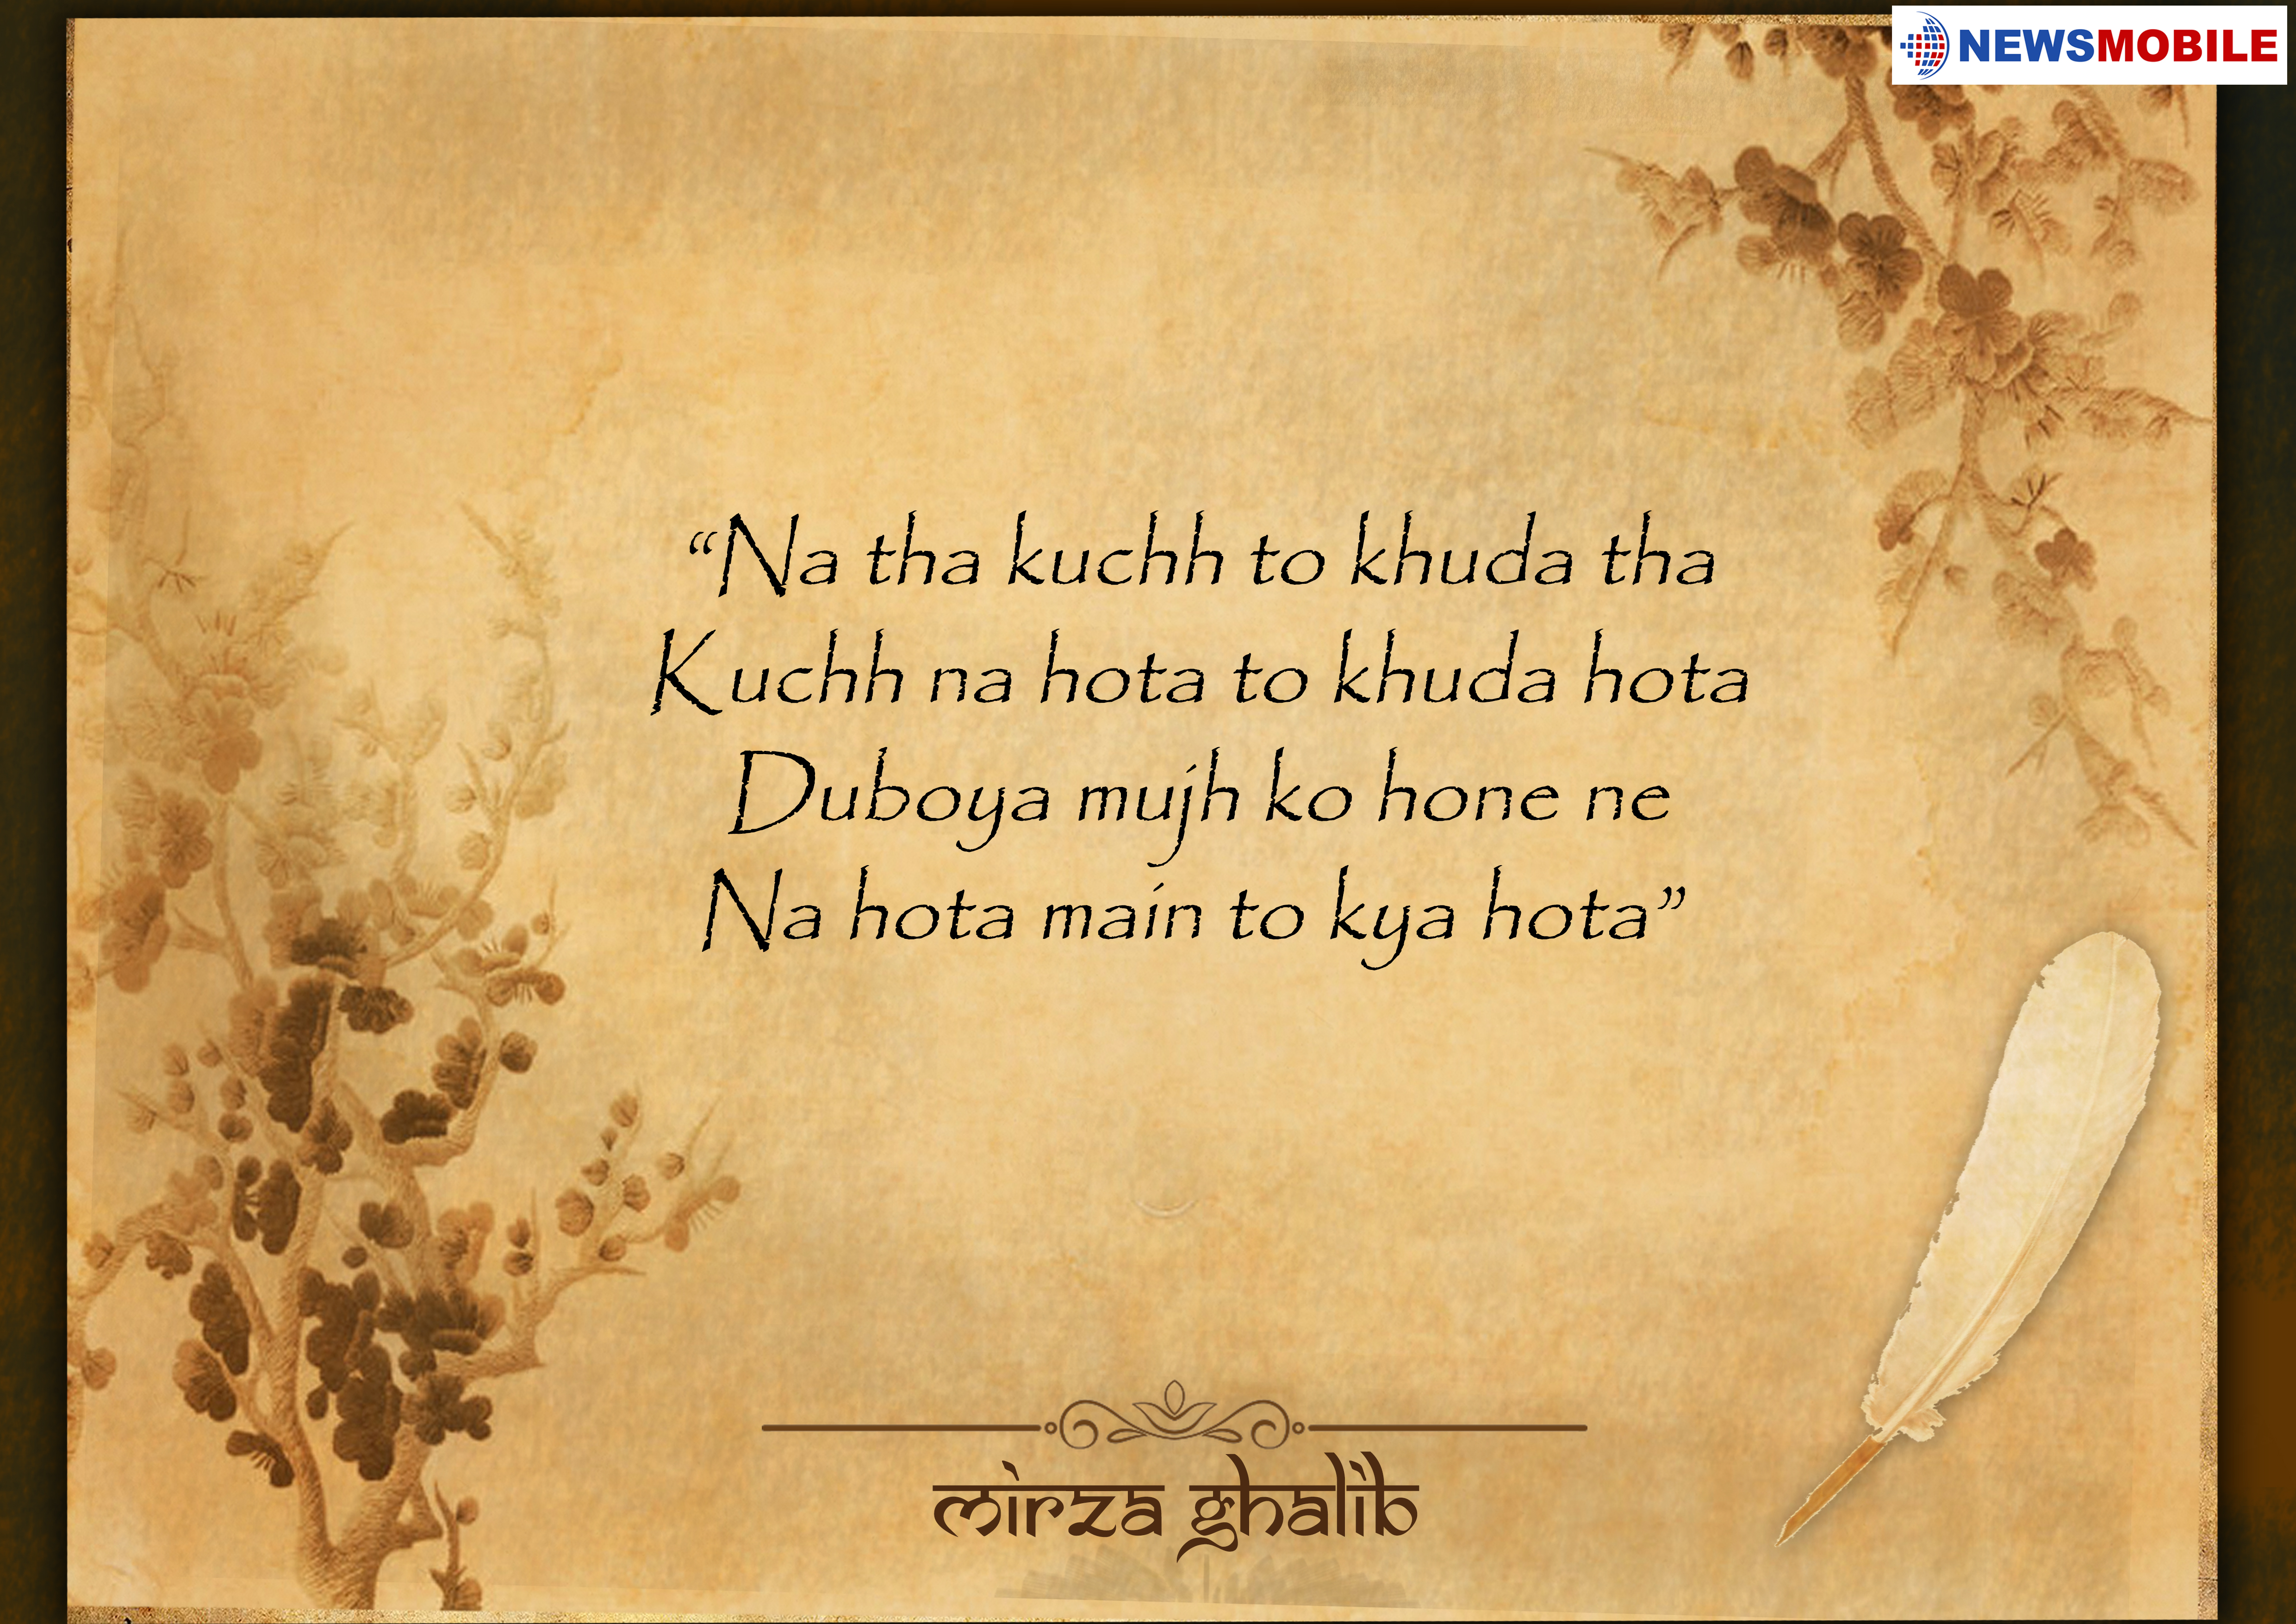 In Pictures: 15 timeless Mirza Ghalib couplets will make you